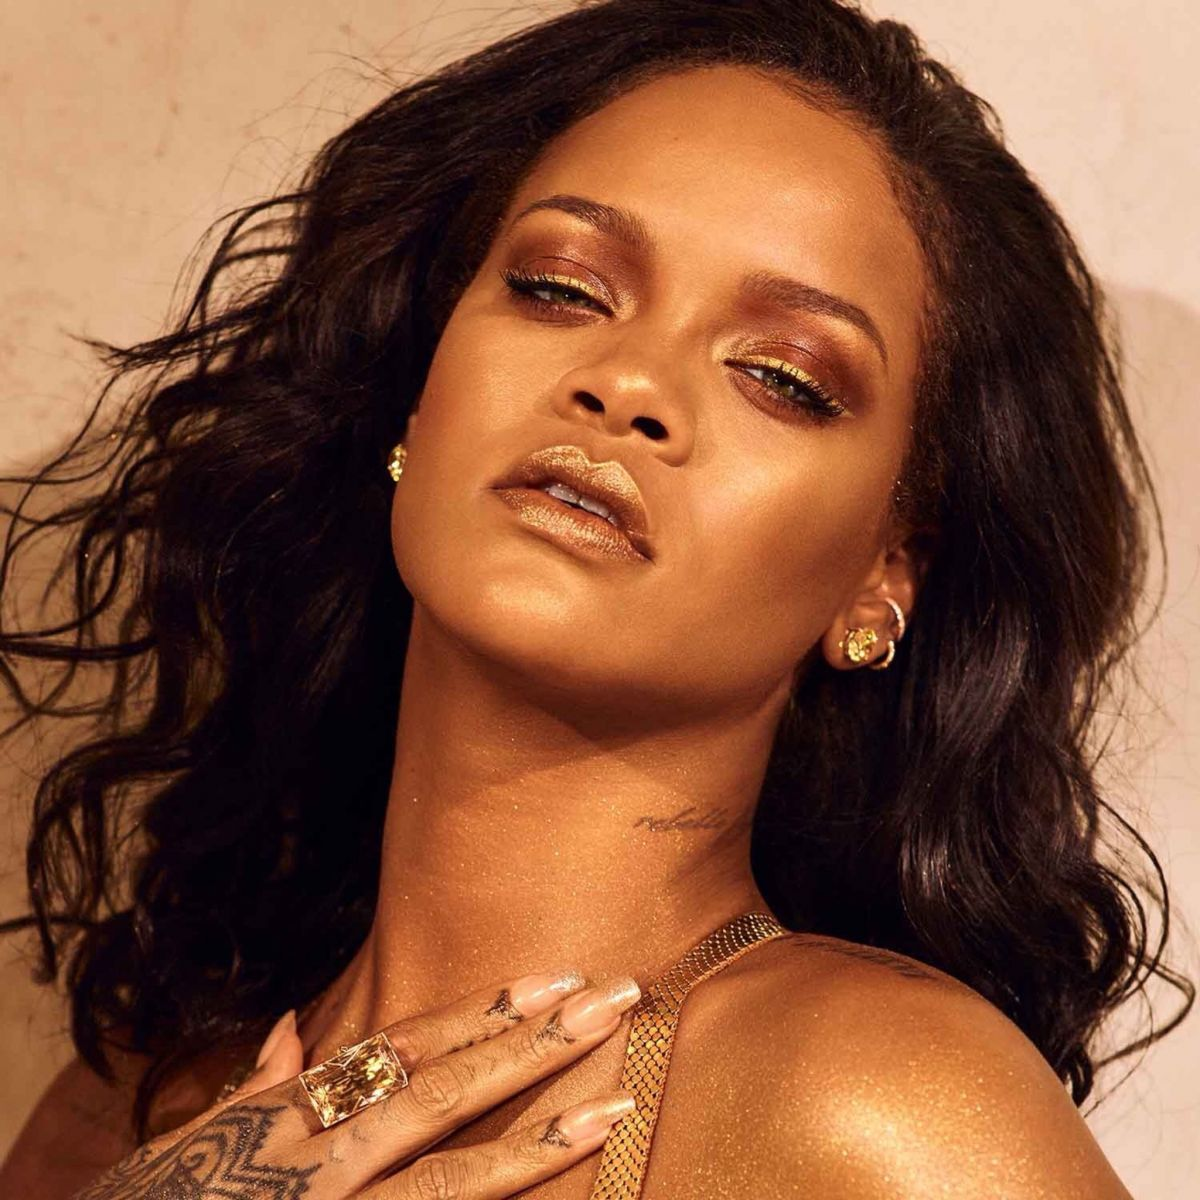 rihanna-for-fenty-beauty-body-lava-2019-campaign-3.jpg